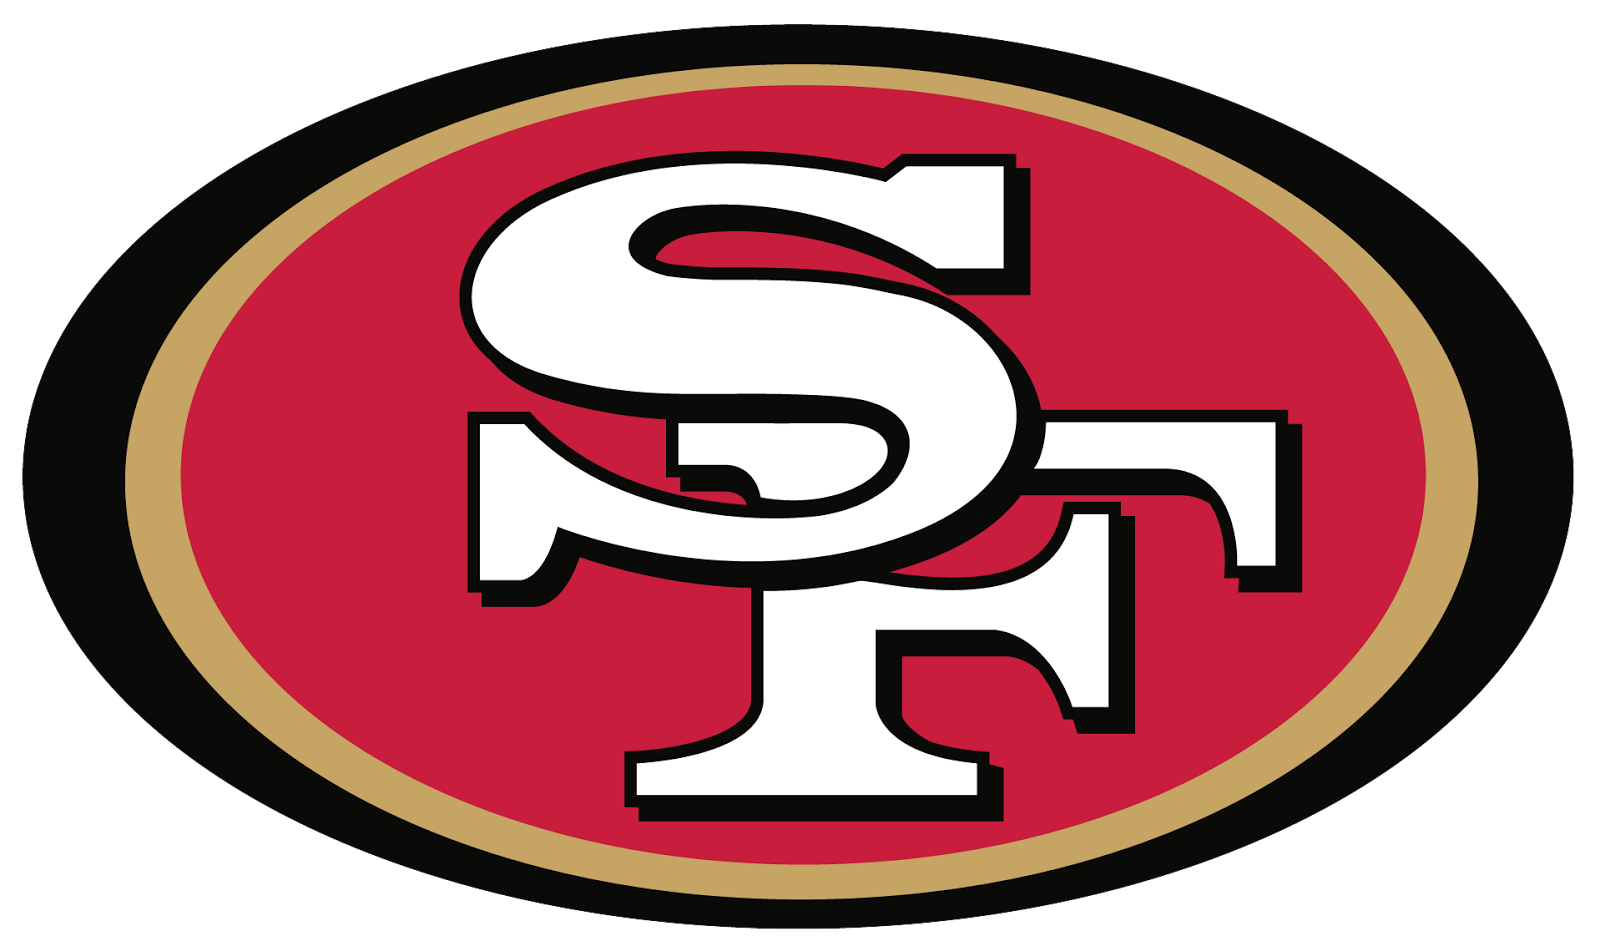 png download 49ers svg silhouette #88558625